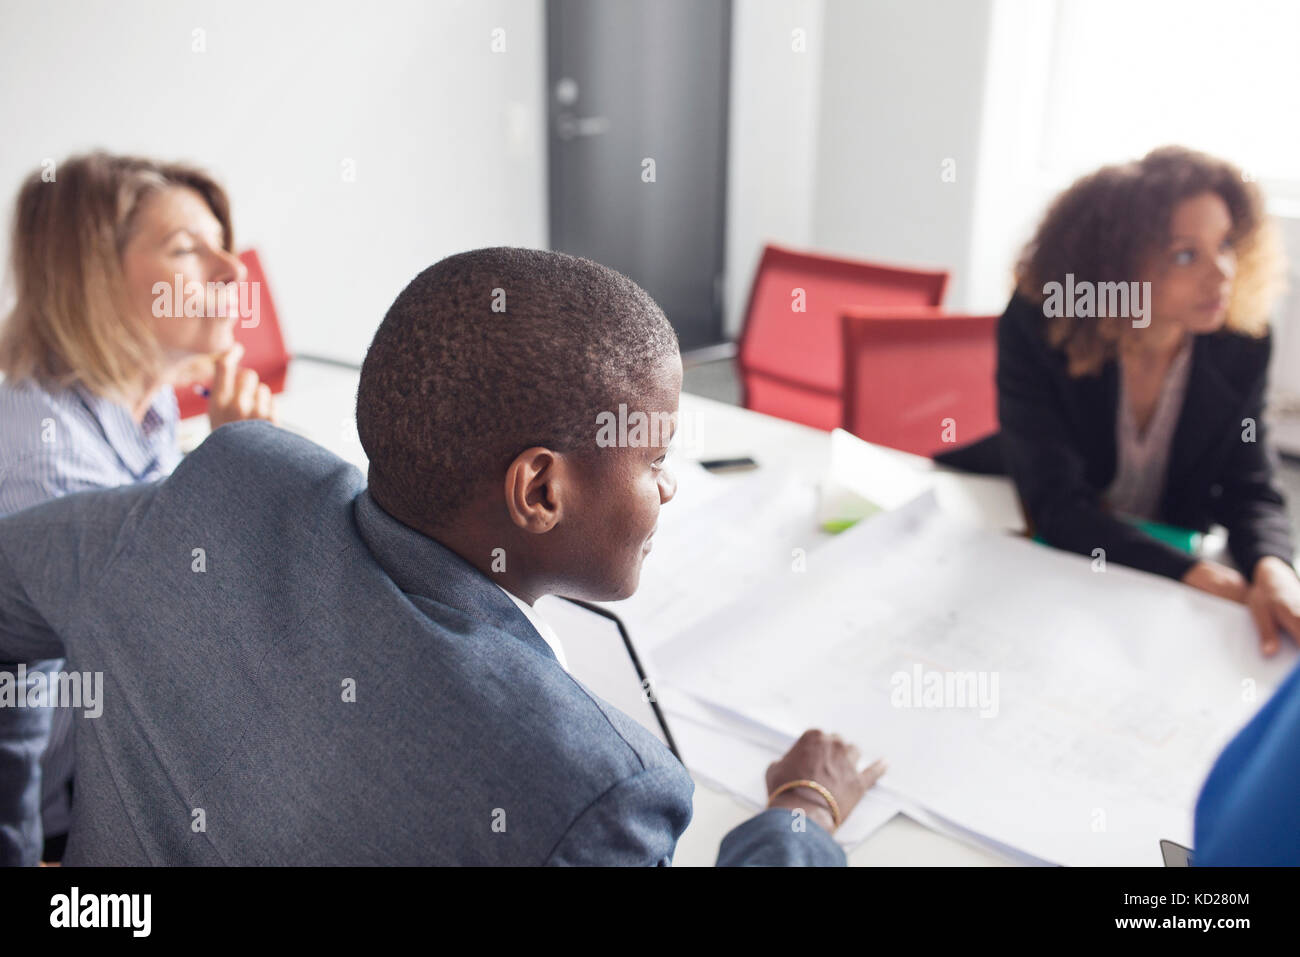 Team of architects and project managers meeting in office - Stock Image